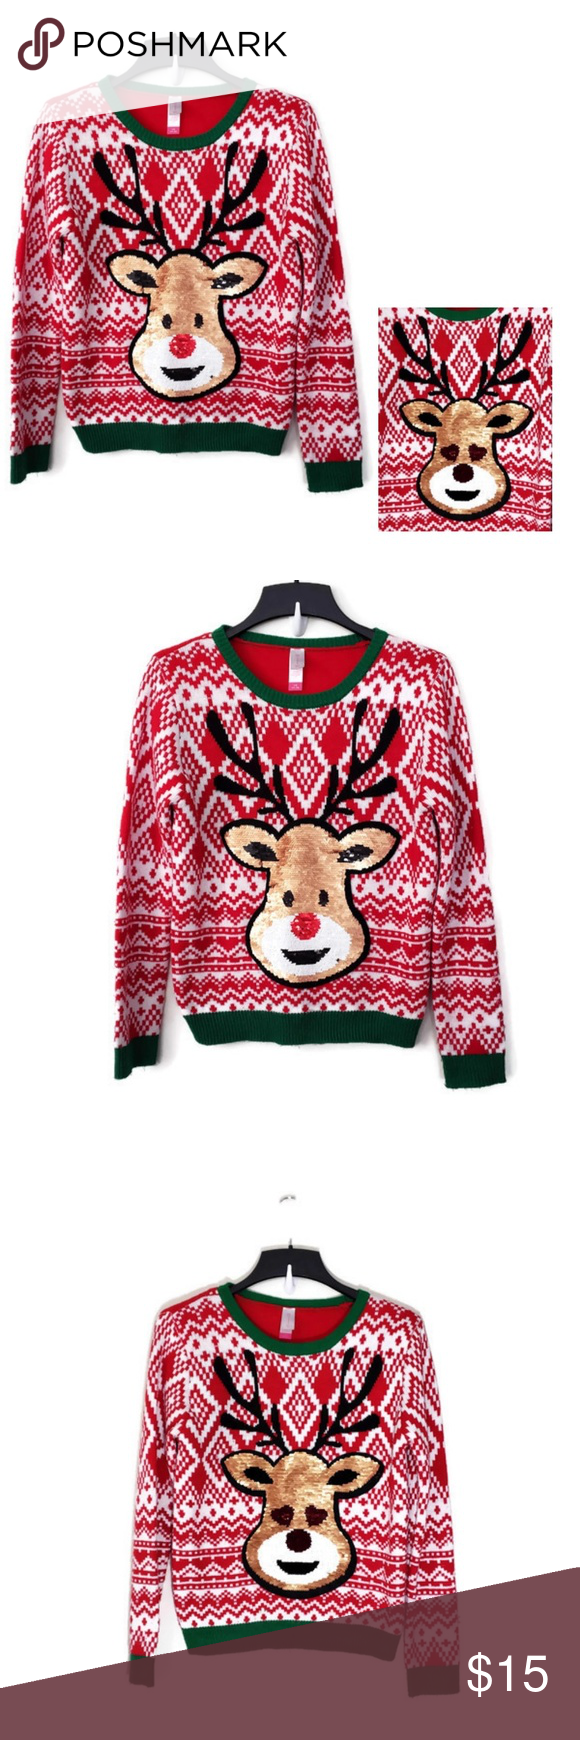 Sequin Raindeer Holiday Sweater Sweaters Holiday Sweater Sweaters For Women